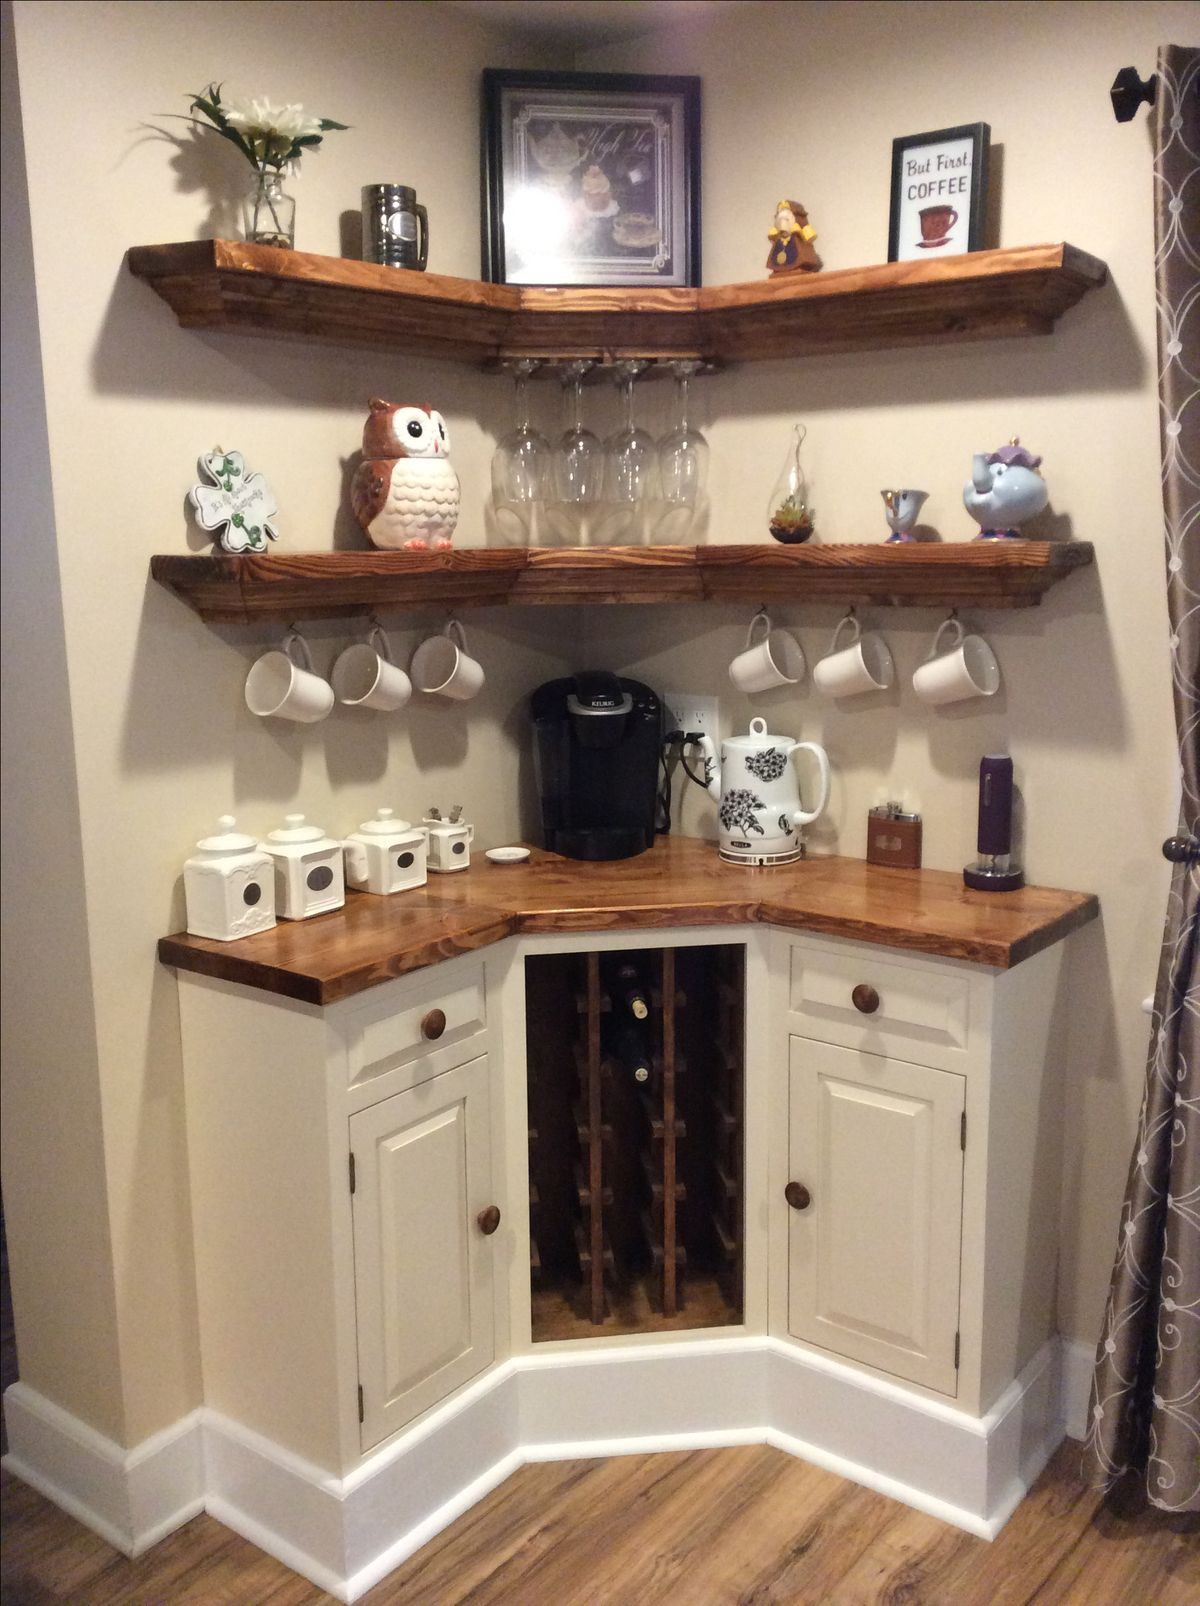 Coffee Station. Every home needs one of these. | craft | Pinterest ...